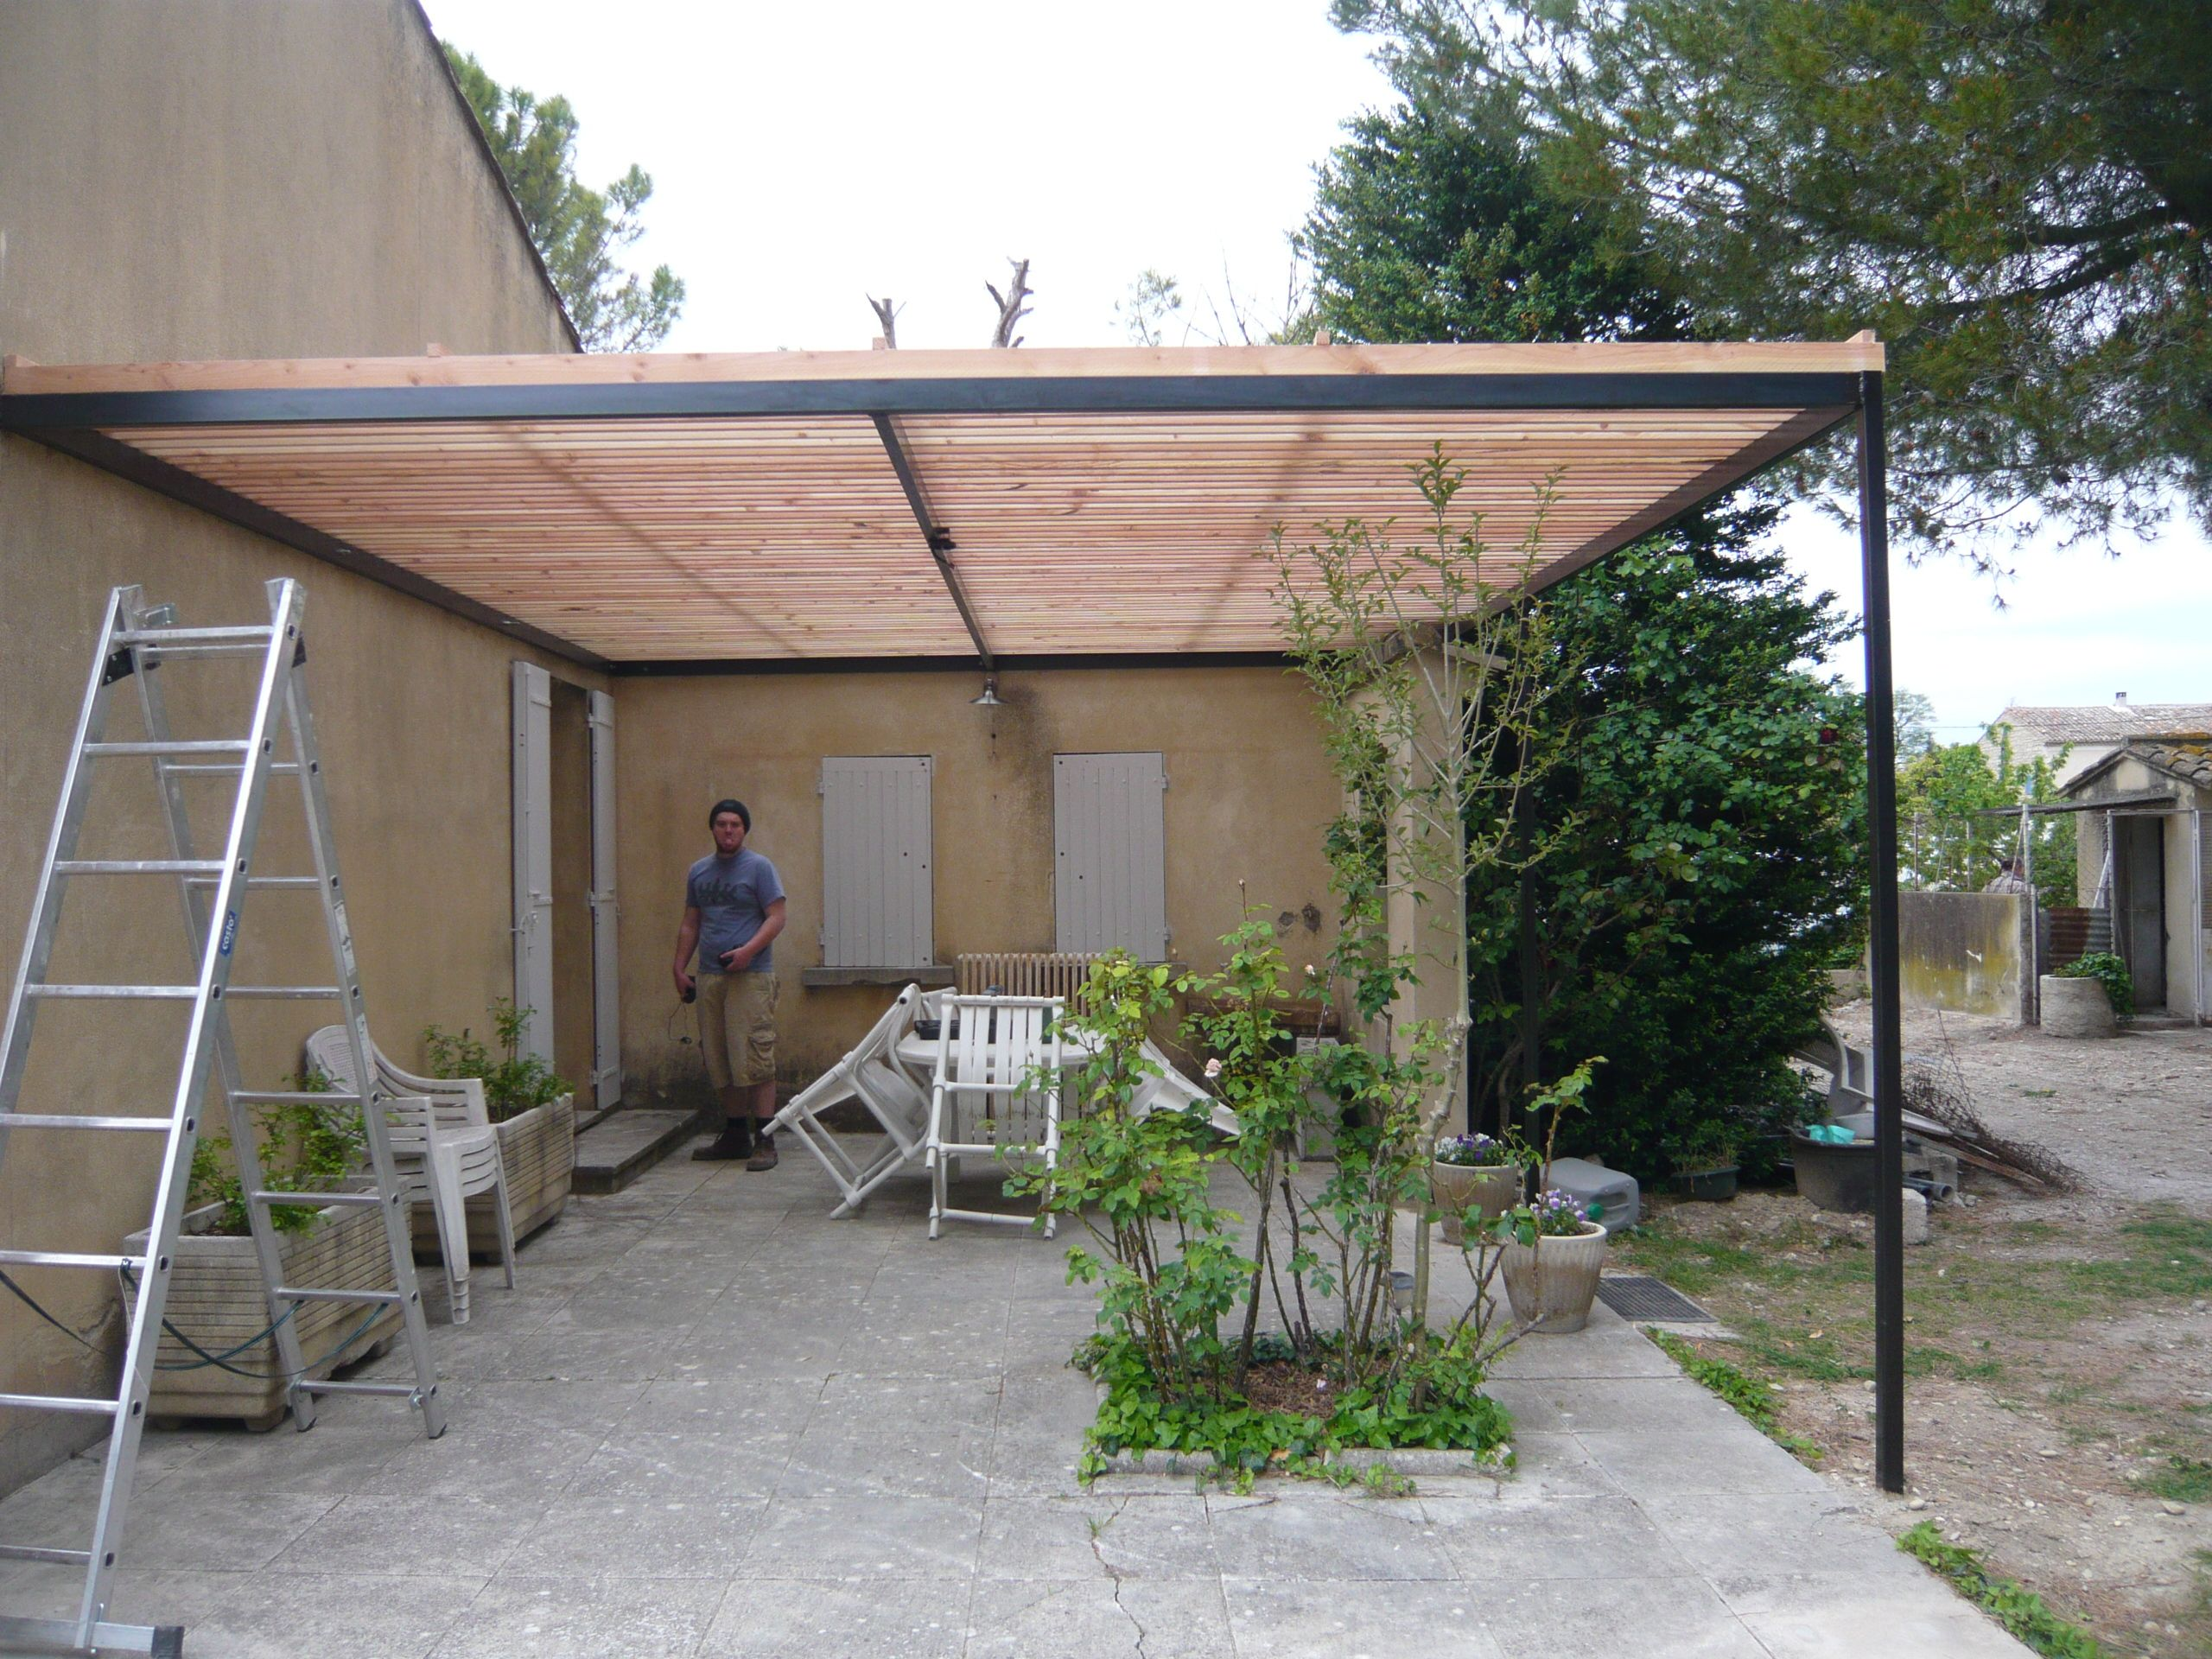 Pergola bois m tal instructions de montage do it yourself - Canisse pour pergola exterieur ...